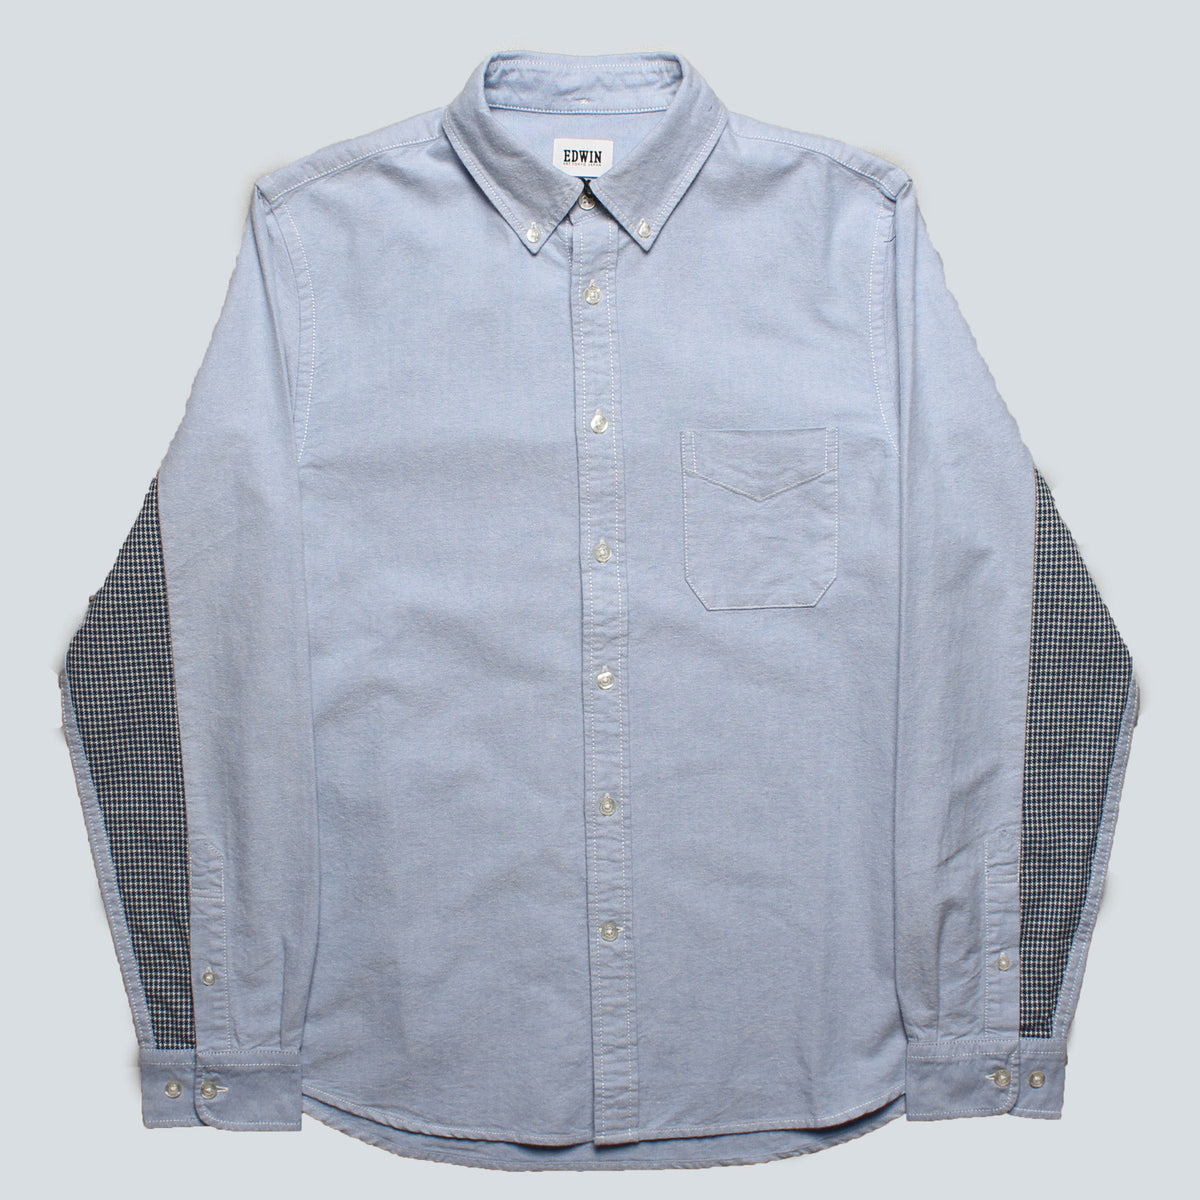 EDWIN - COTTON OXFORD SHIRT - BLUE/MOCK INDIGO